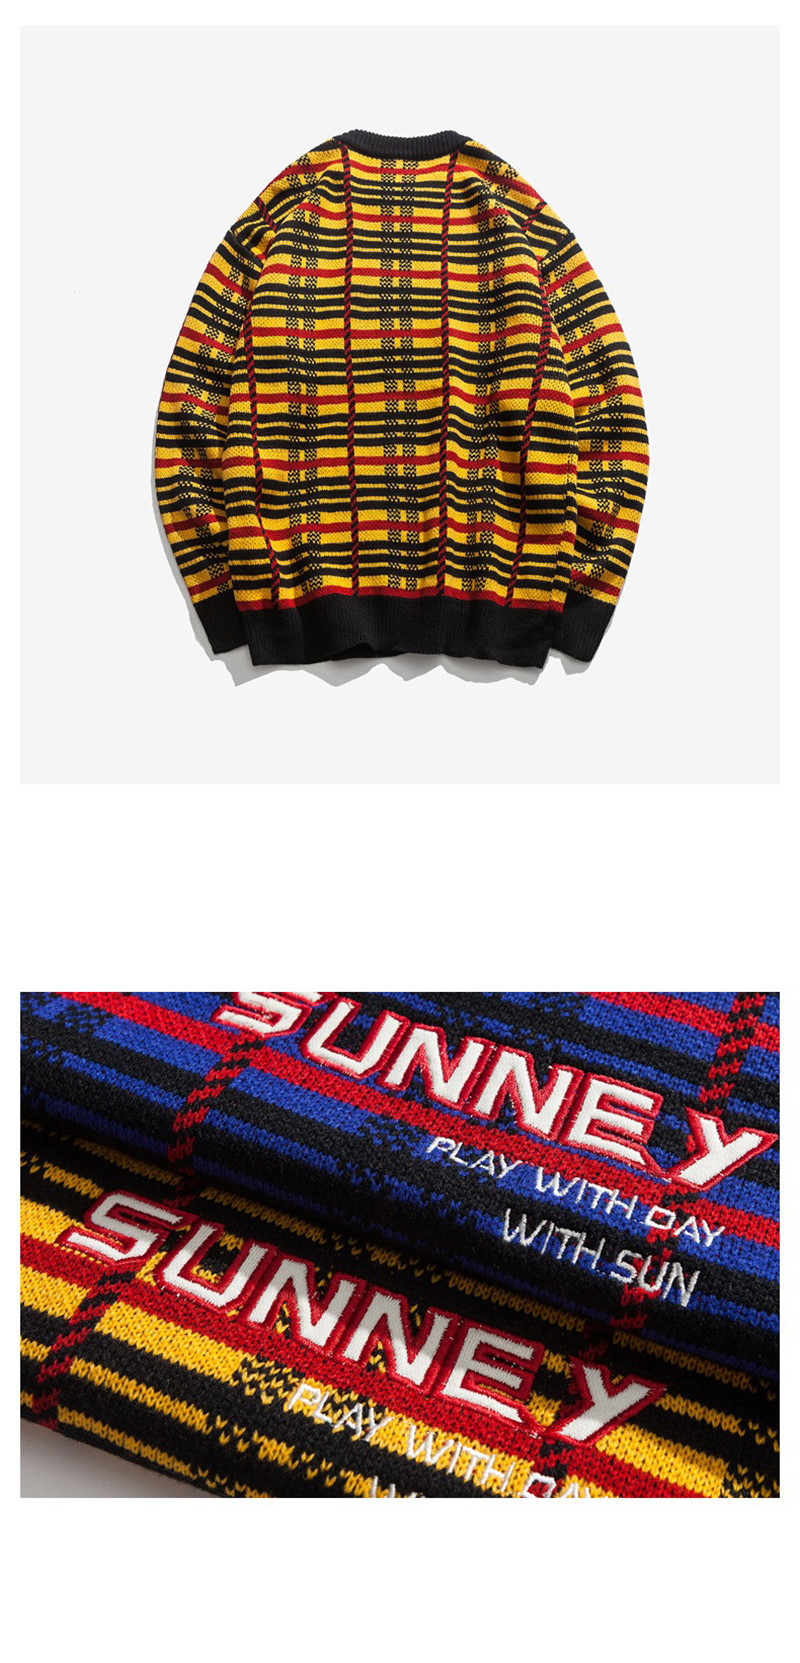 Knitted Harajuku Casual Embroidered Letter Plaid Sweater for Men Japanese Style Urban Boys Knit Pullover Jumper Plus Size M-XL 9